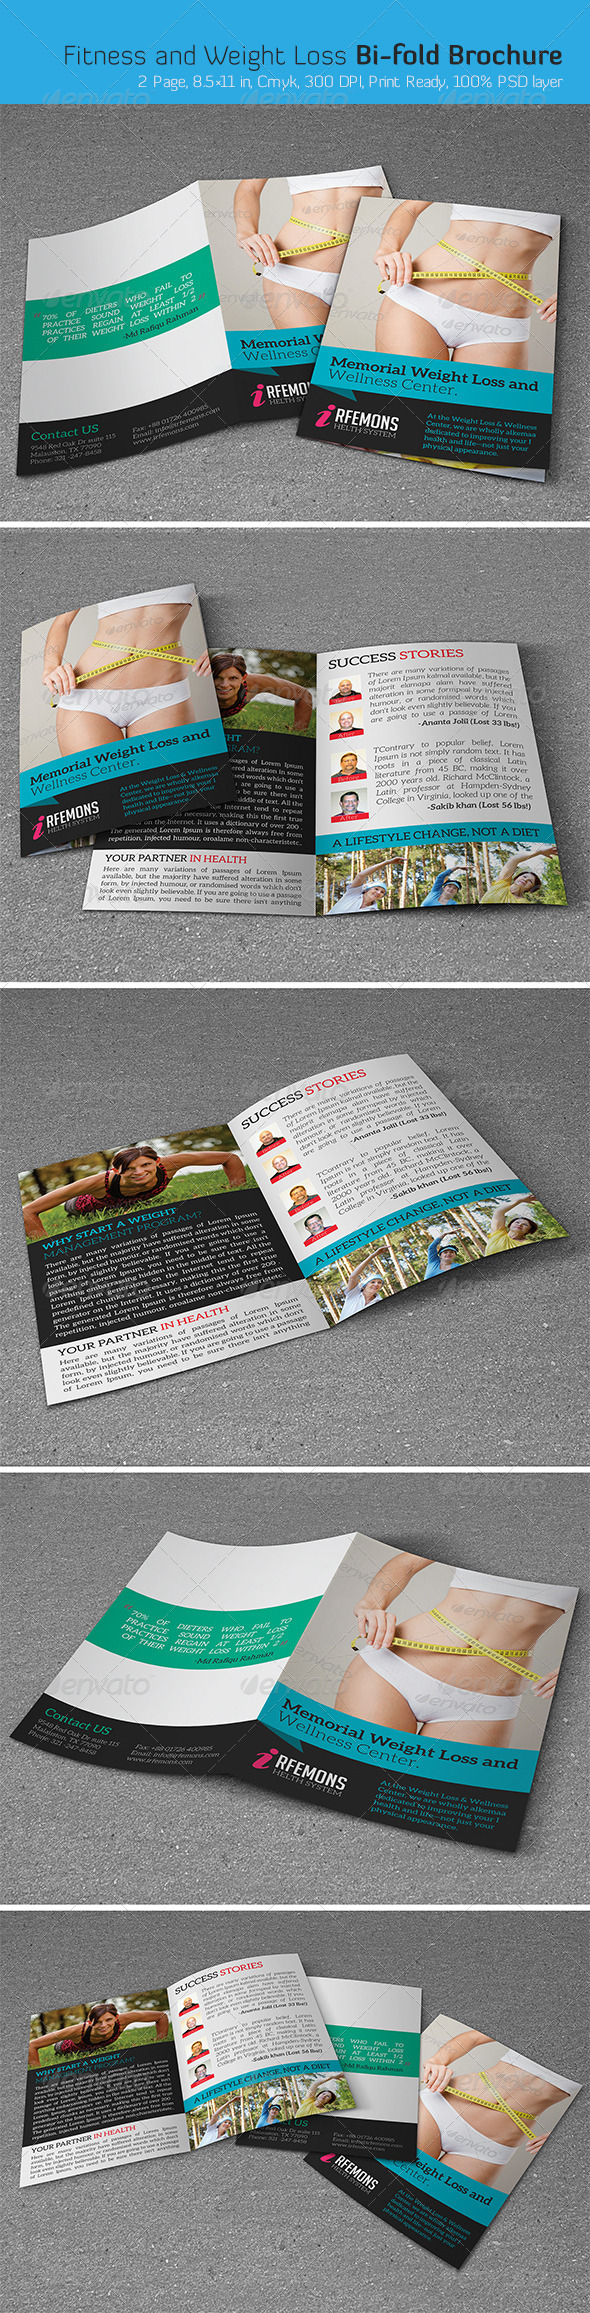 Fitness and Weight Loss Bi-fold Brochure